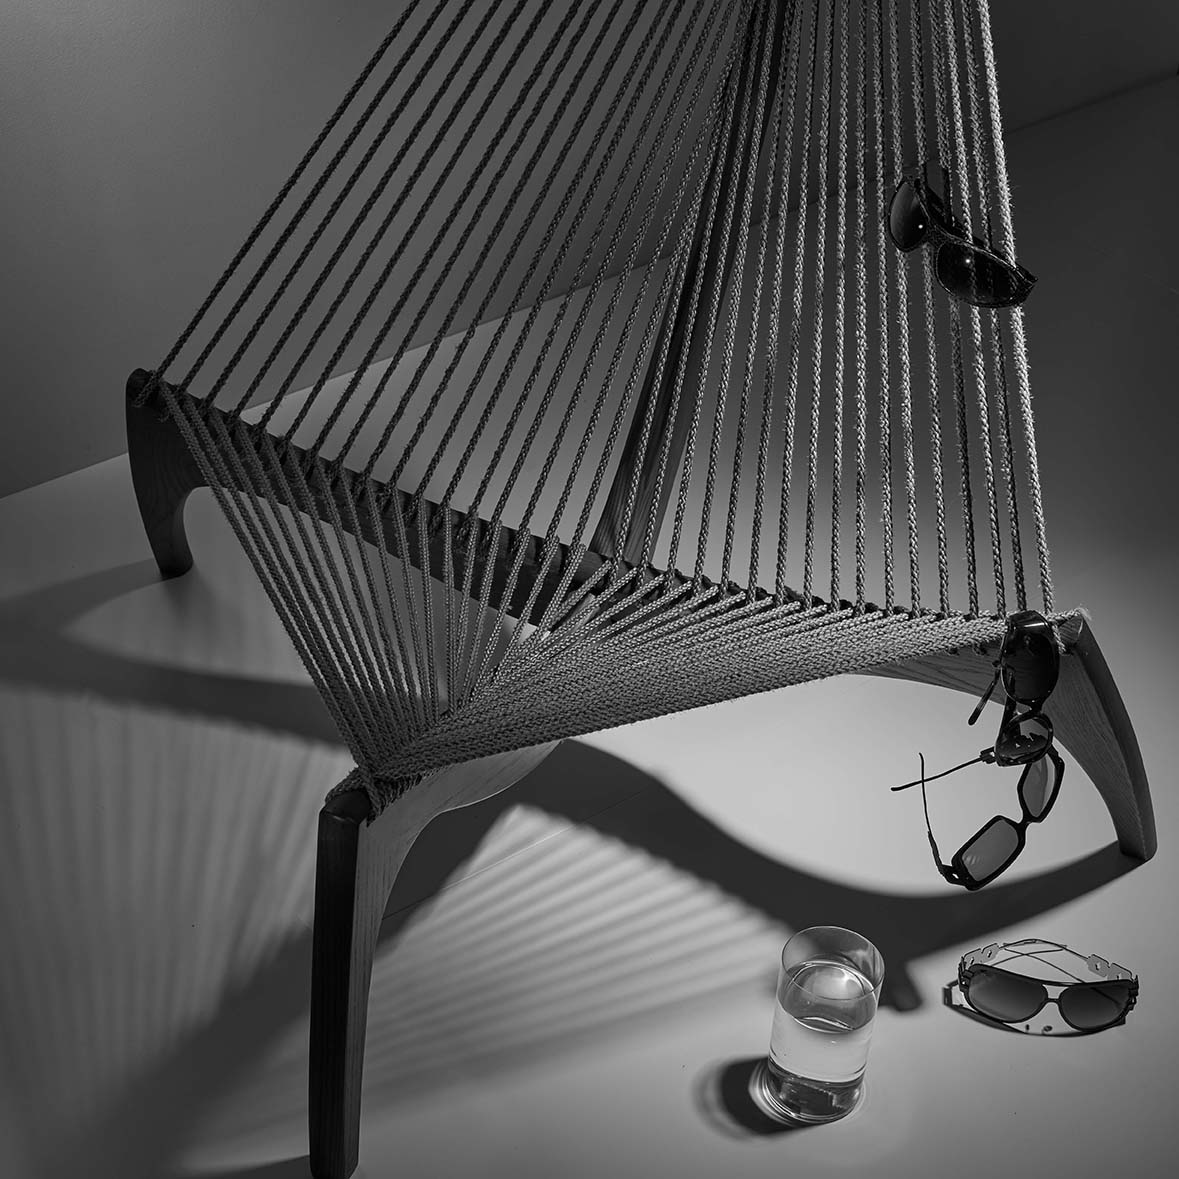 christian roth eyewear chair